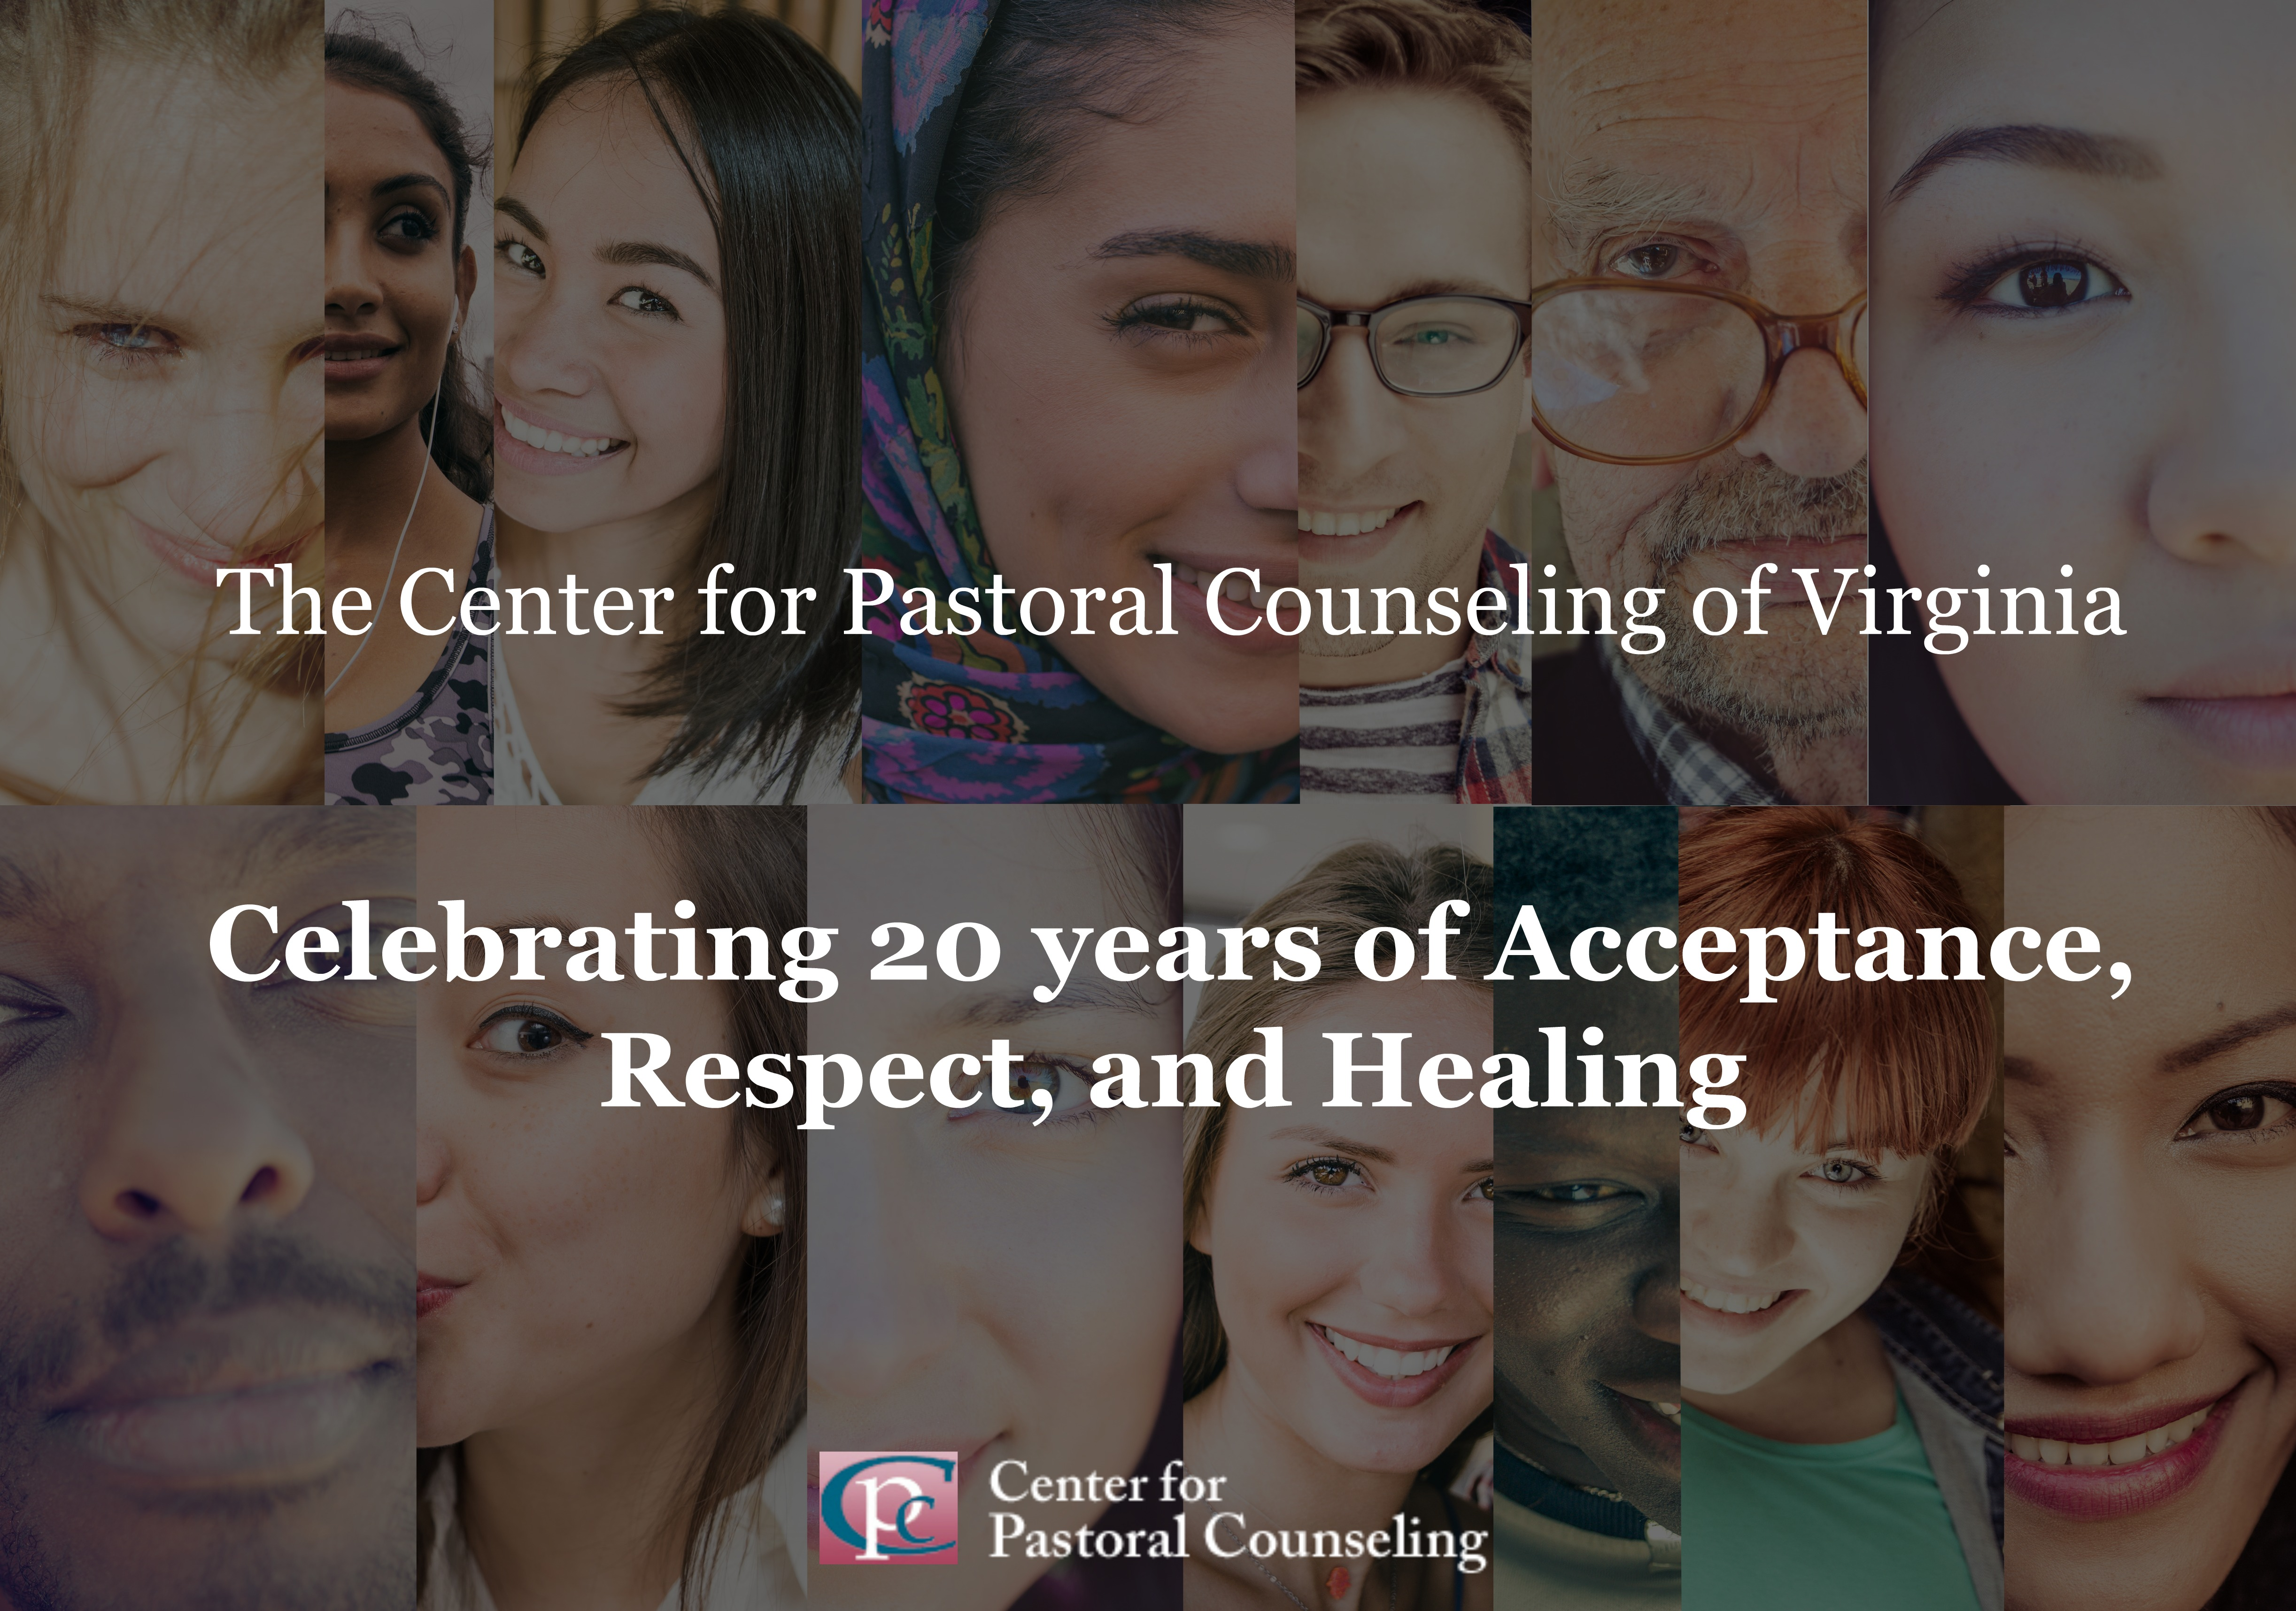 Celebrating 20 years of Acceptance, Respect, and Healing